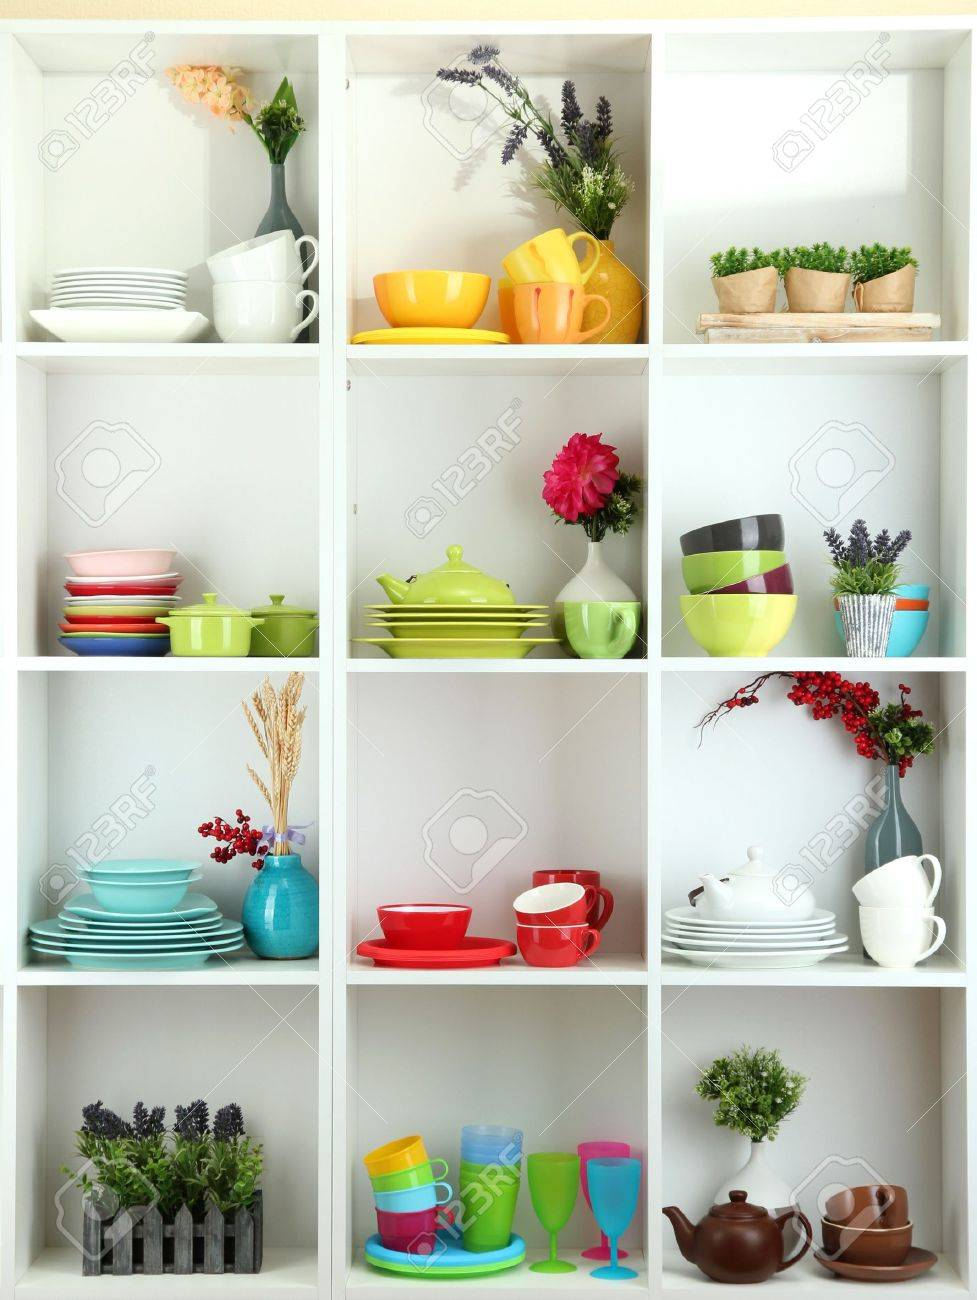 Beautiful white shelves with tableware and decor - 17663269